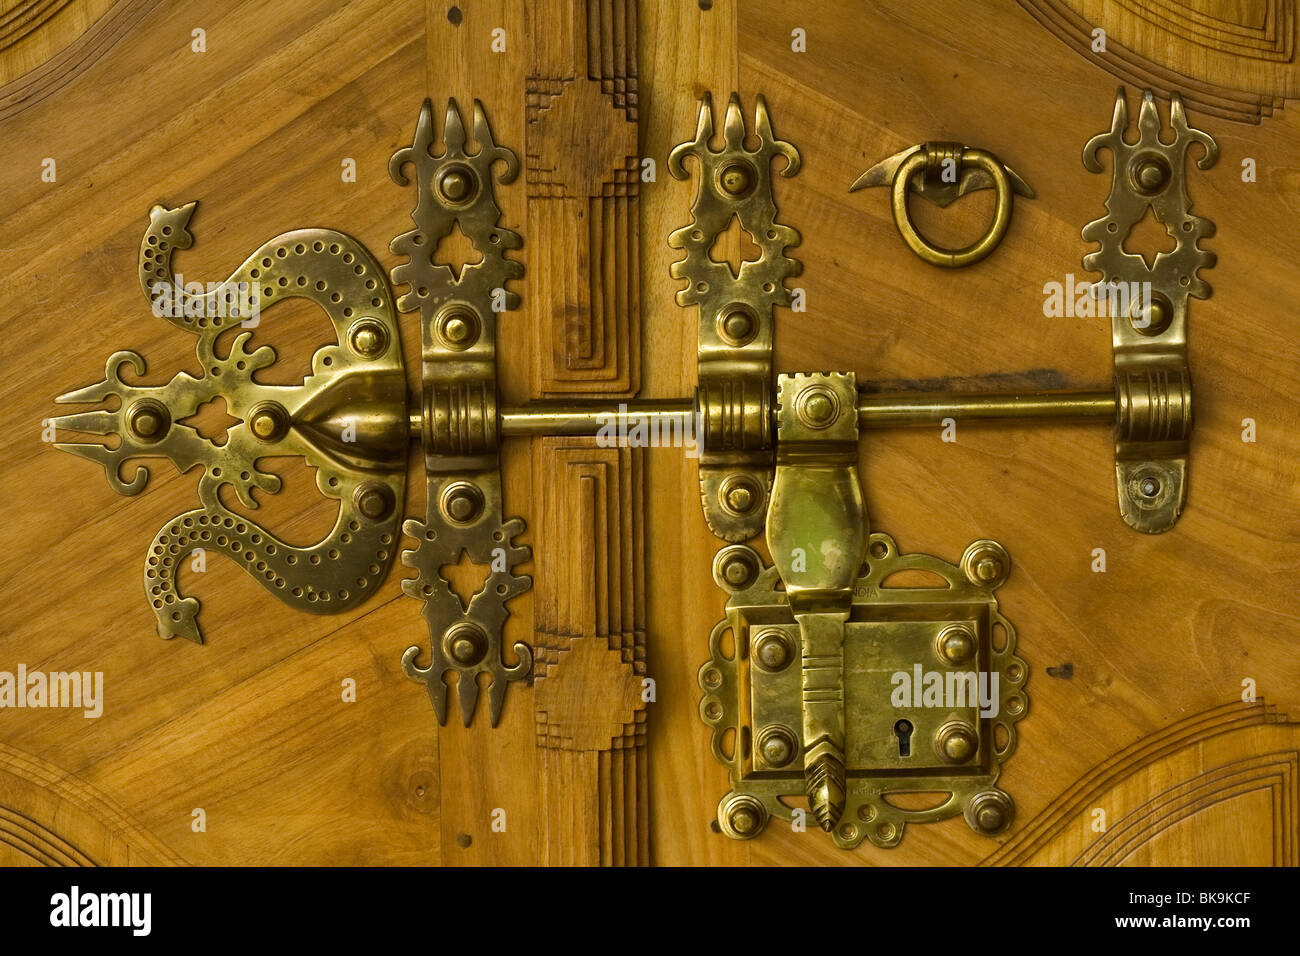 Antique Traditional Brass Door Latch And Lock On Wooden